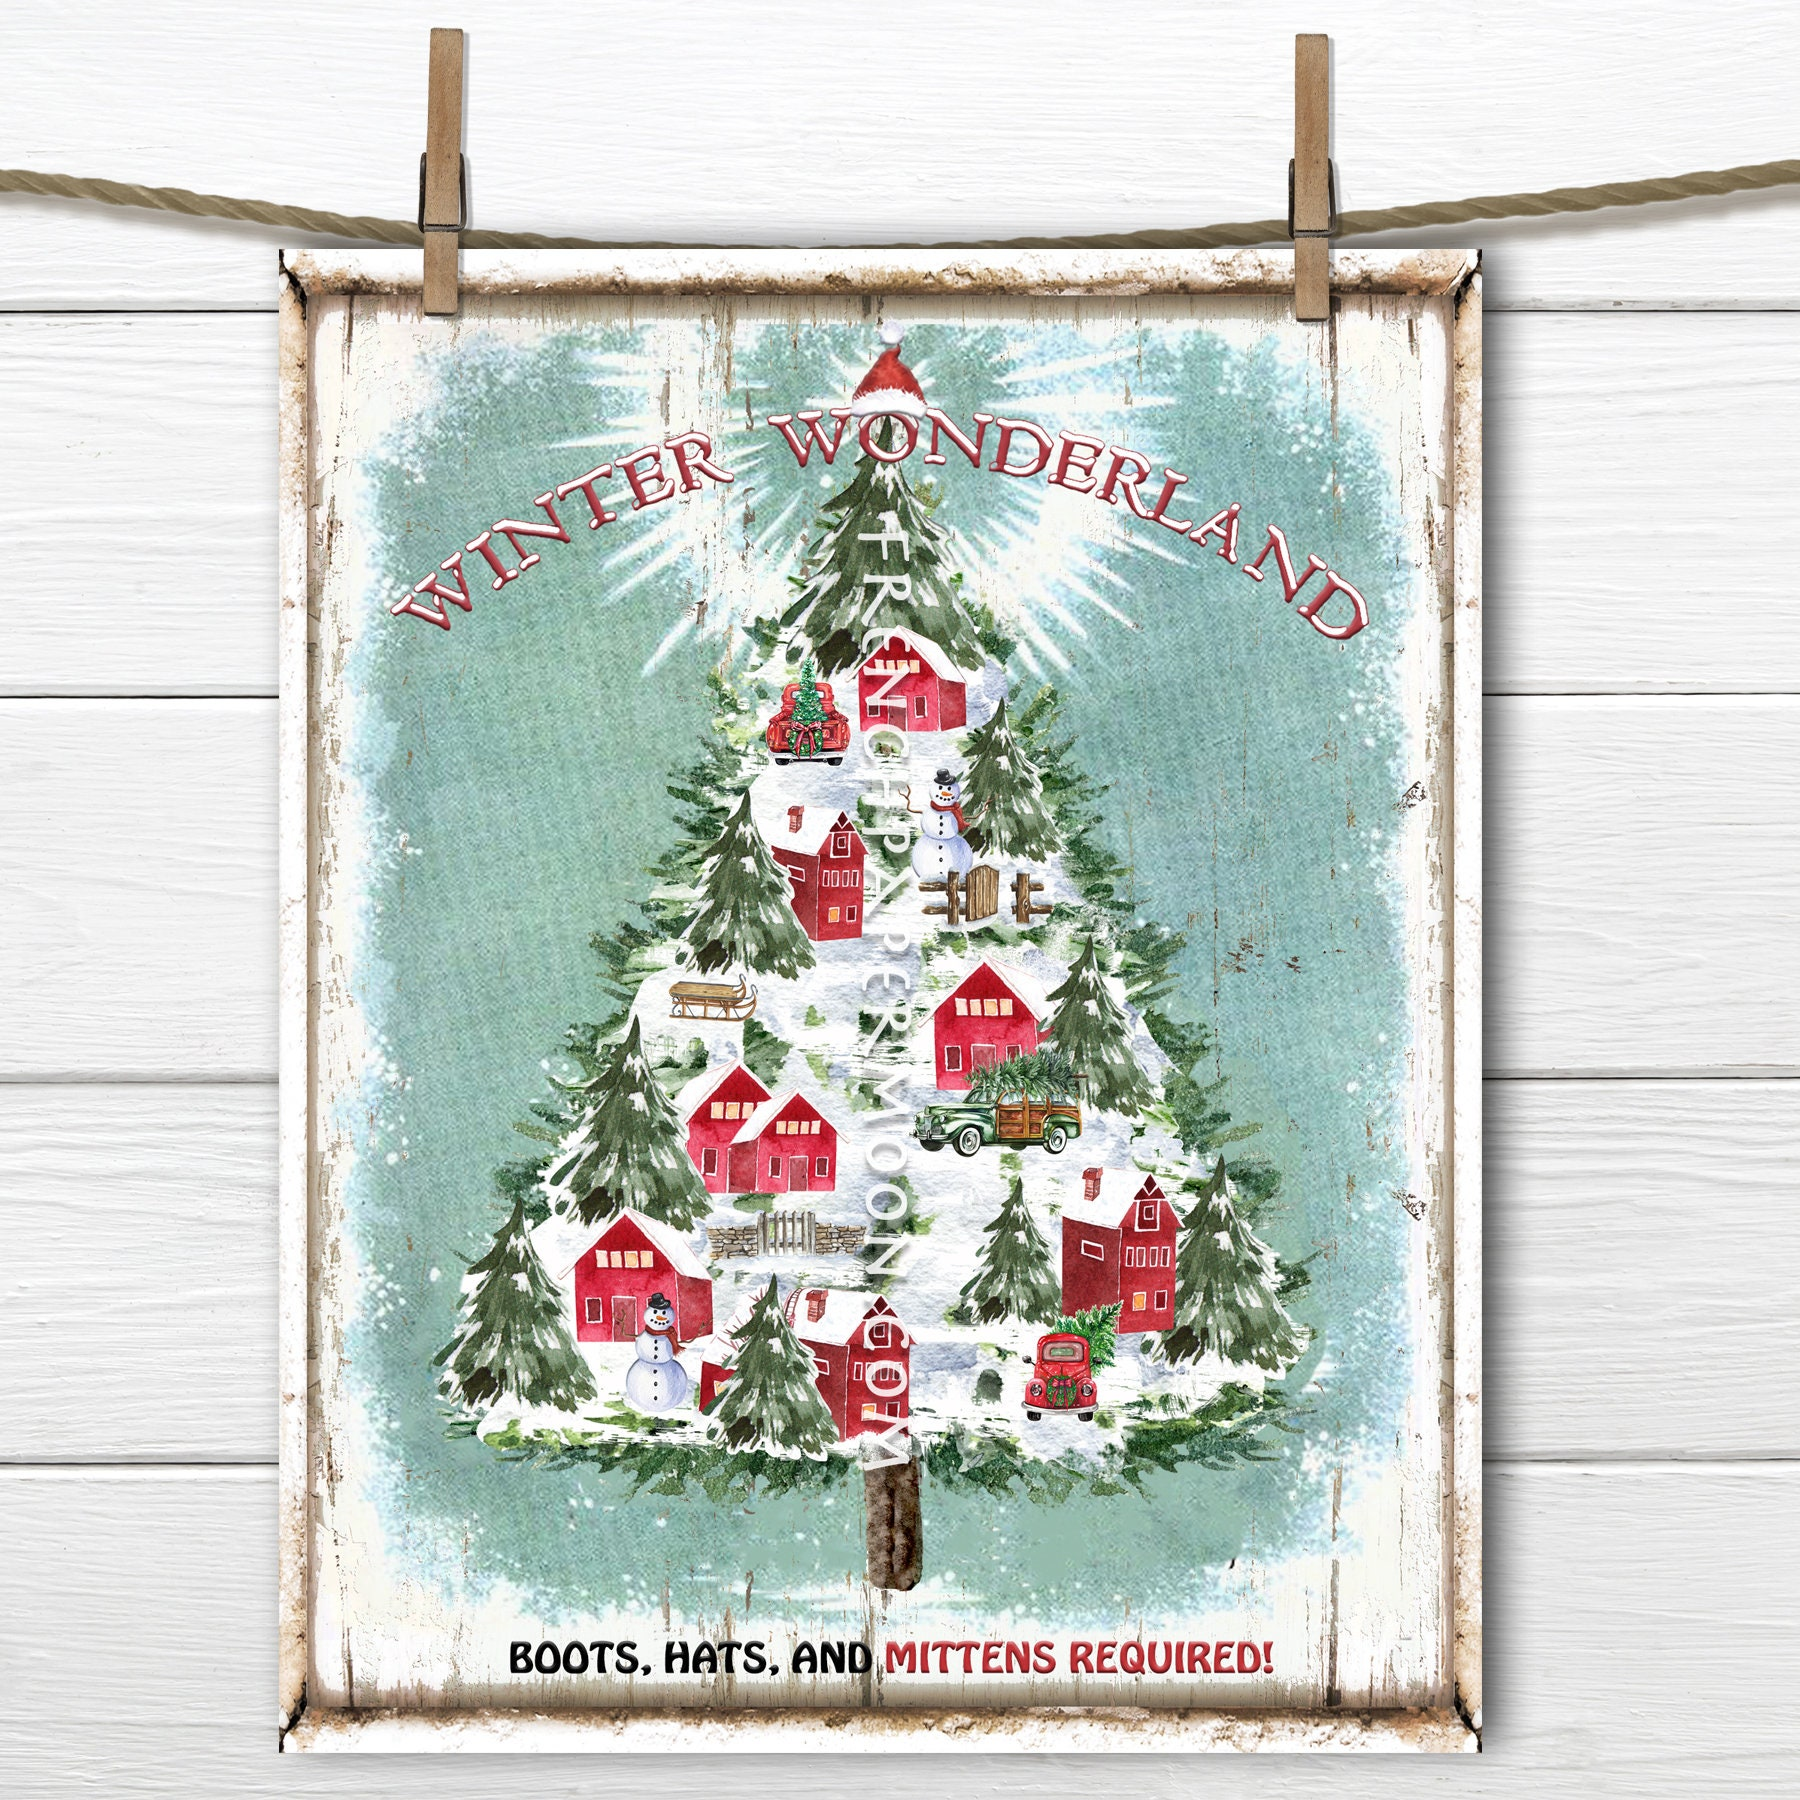 Winter Wonderland Christmas Digital Christmas Village Christmas Tree Diy Christmas Sign Wall Decor Xmas Pillow Wreath Decortransparent